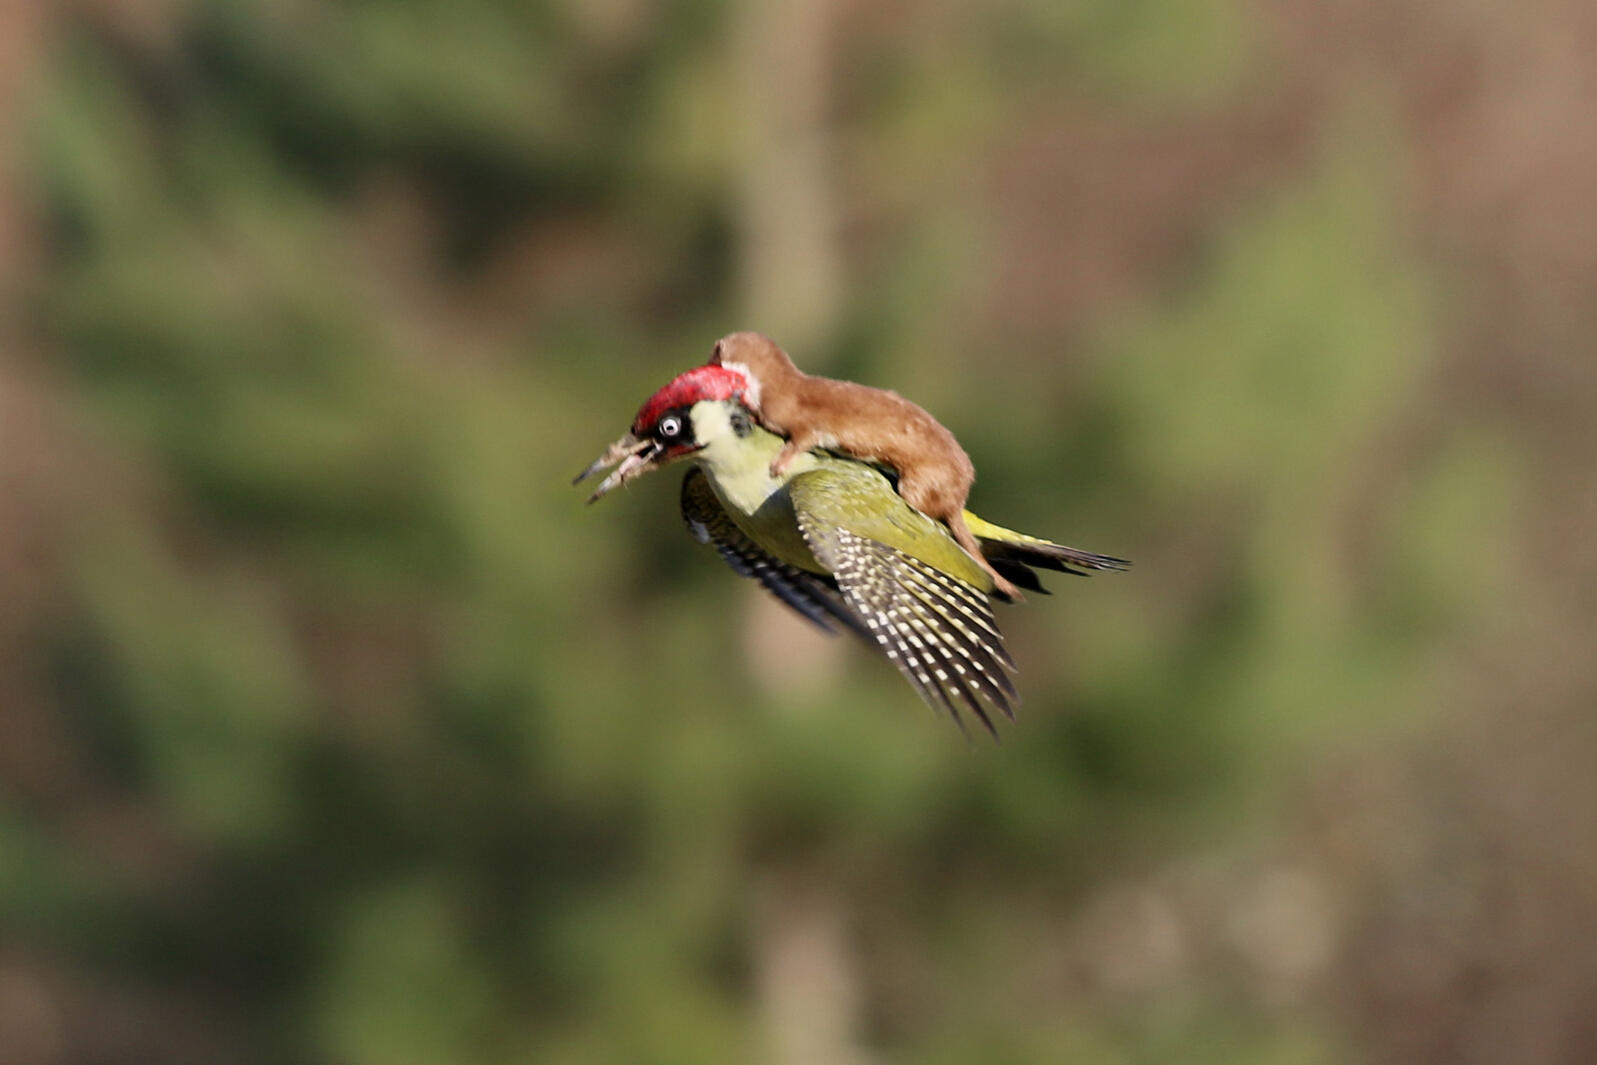 This predatory least weasel takes an unexpected airborne adventure. Martin Le-May